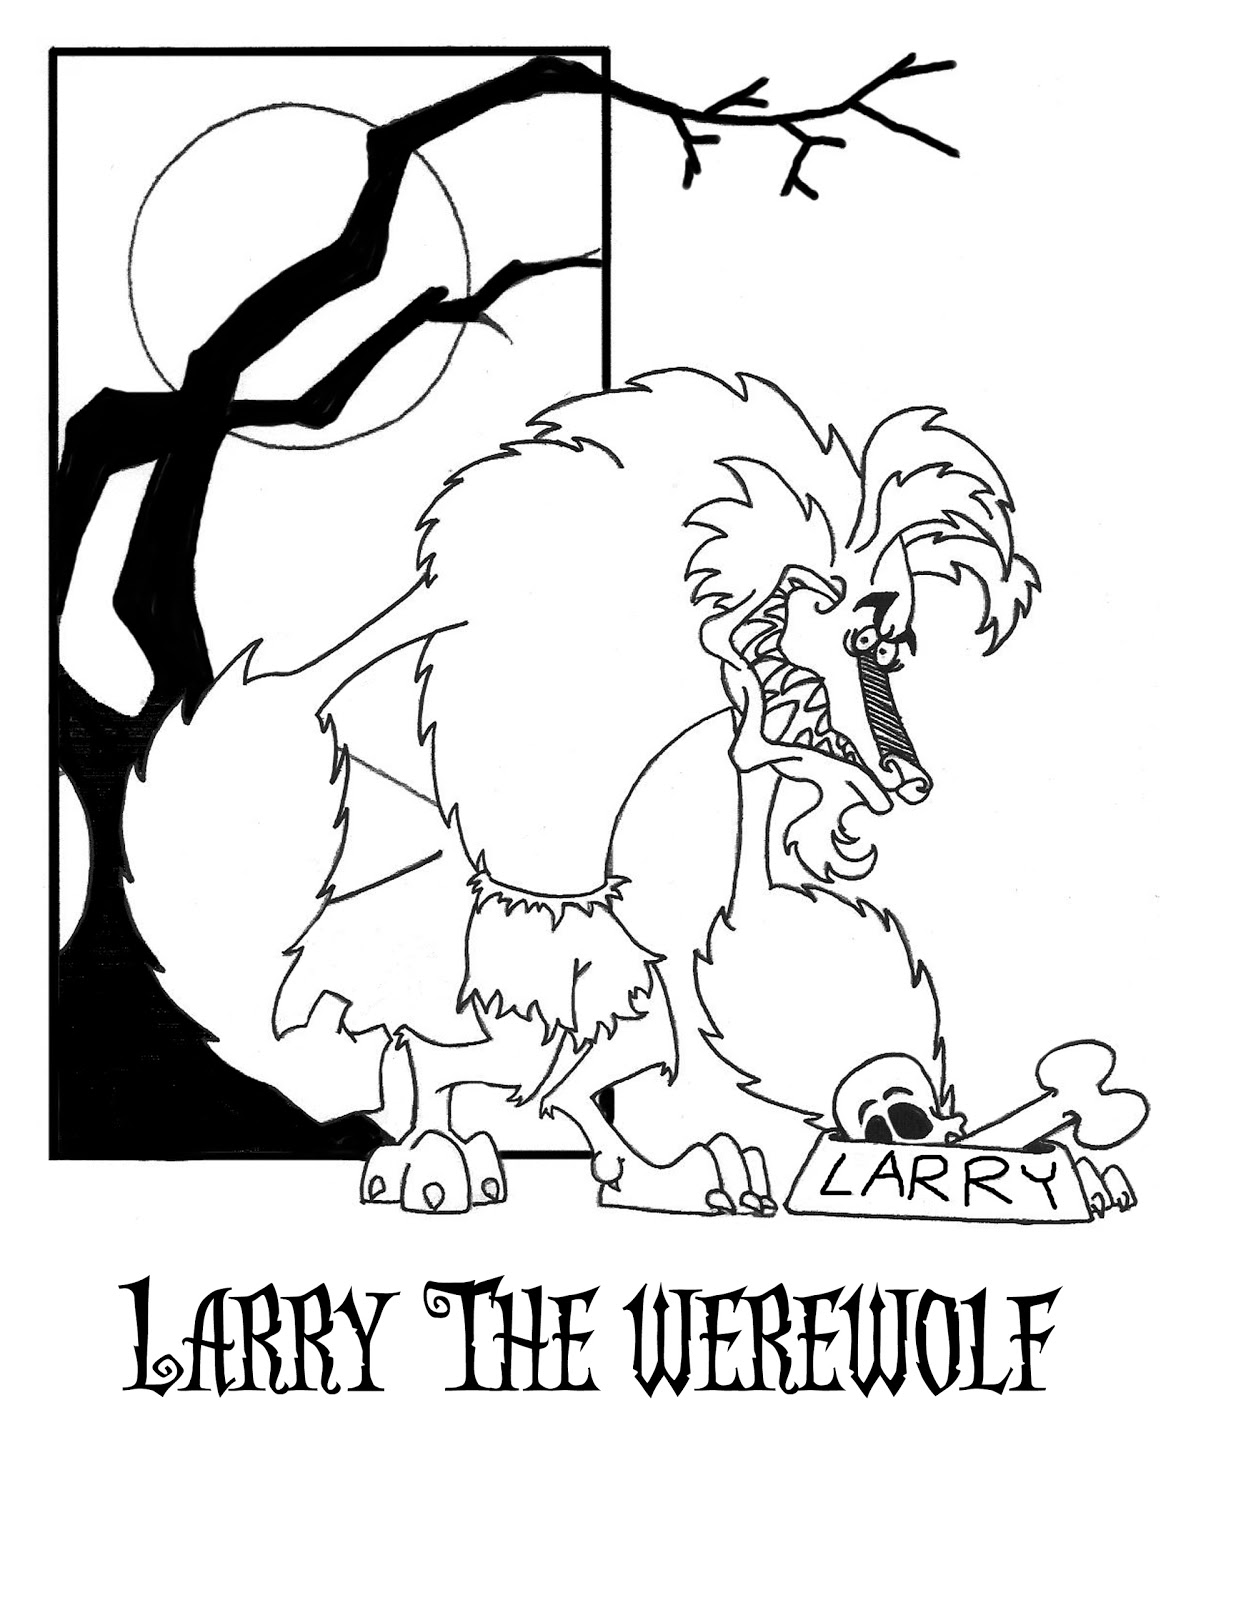 scary werewolf. halloween quiet book characters coloring page 5 ...